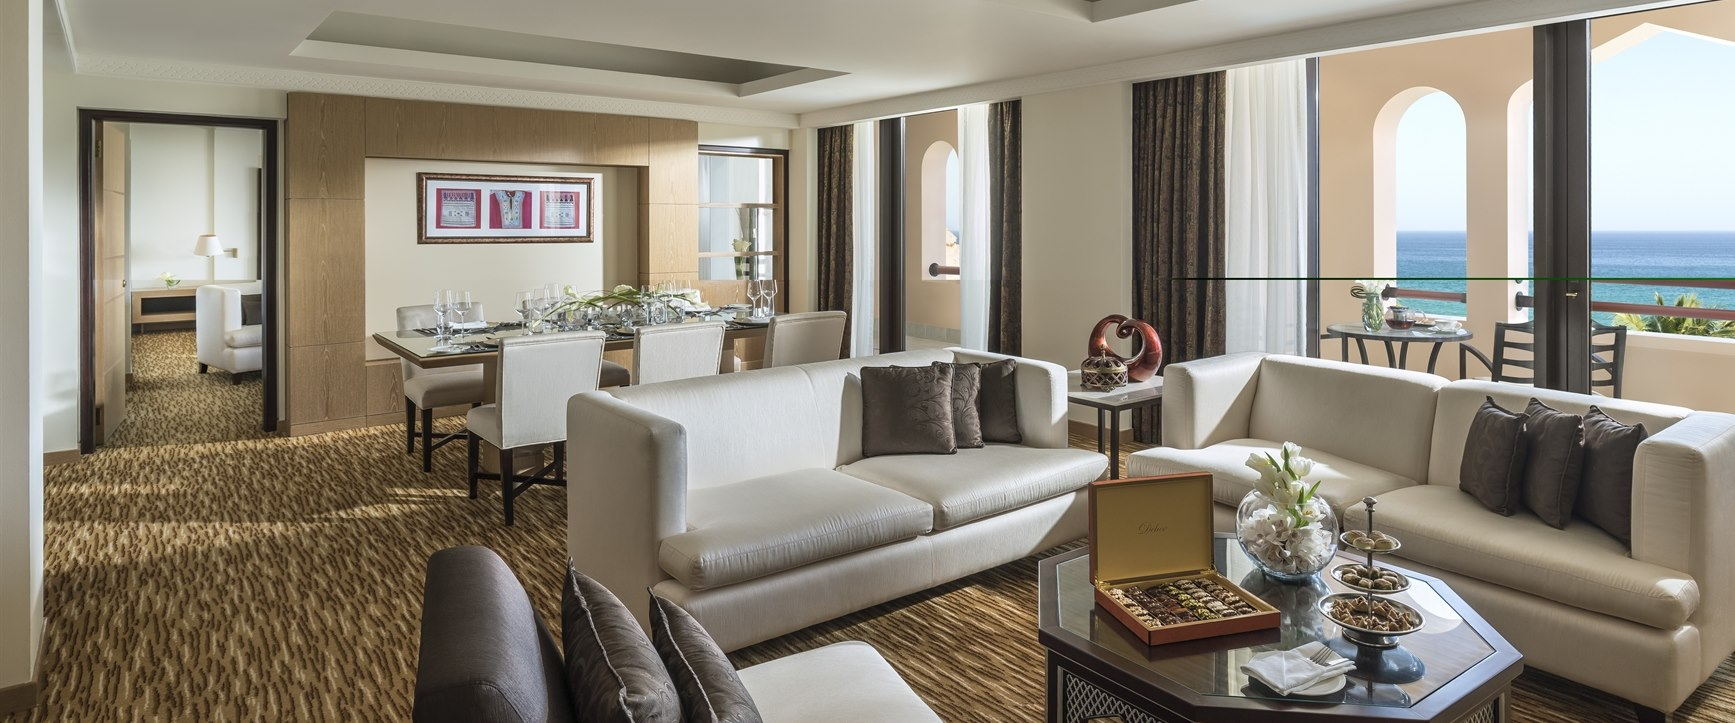 Living Area at Shangri-La's Barr Al Jissah Resort & Spa, Al Bandar